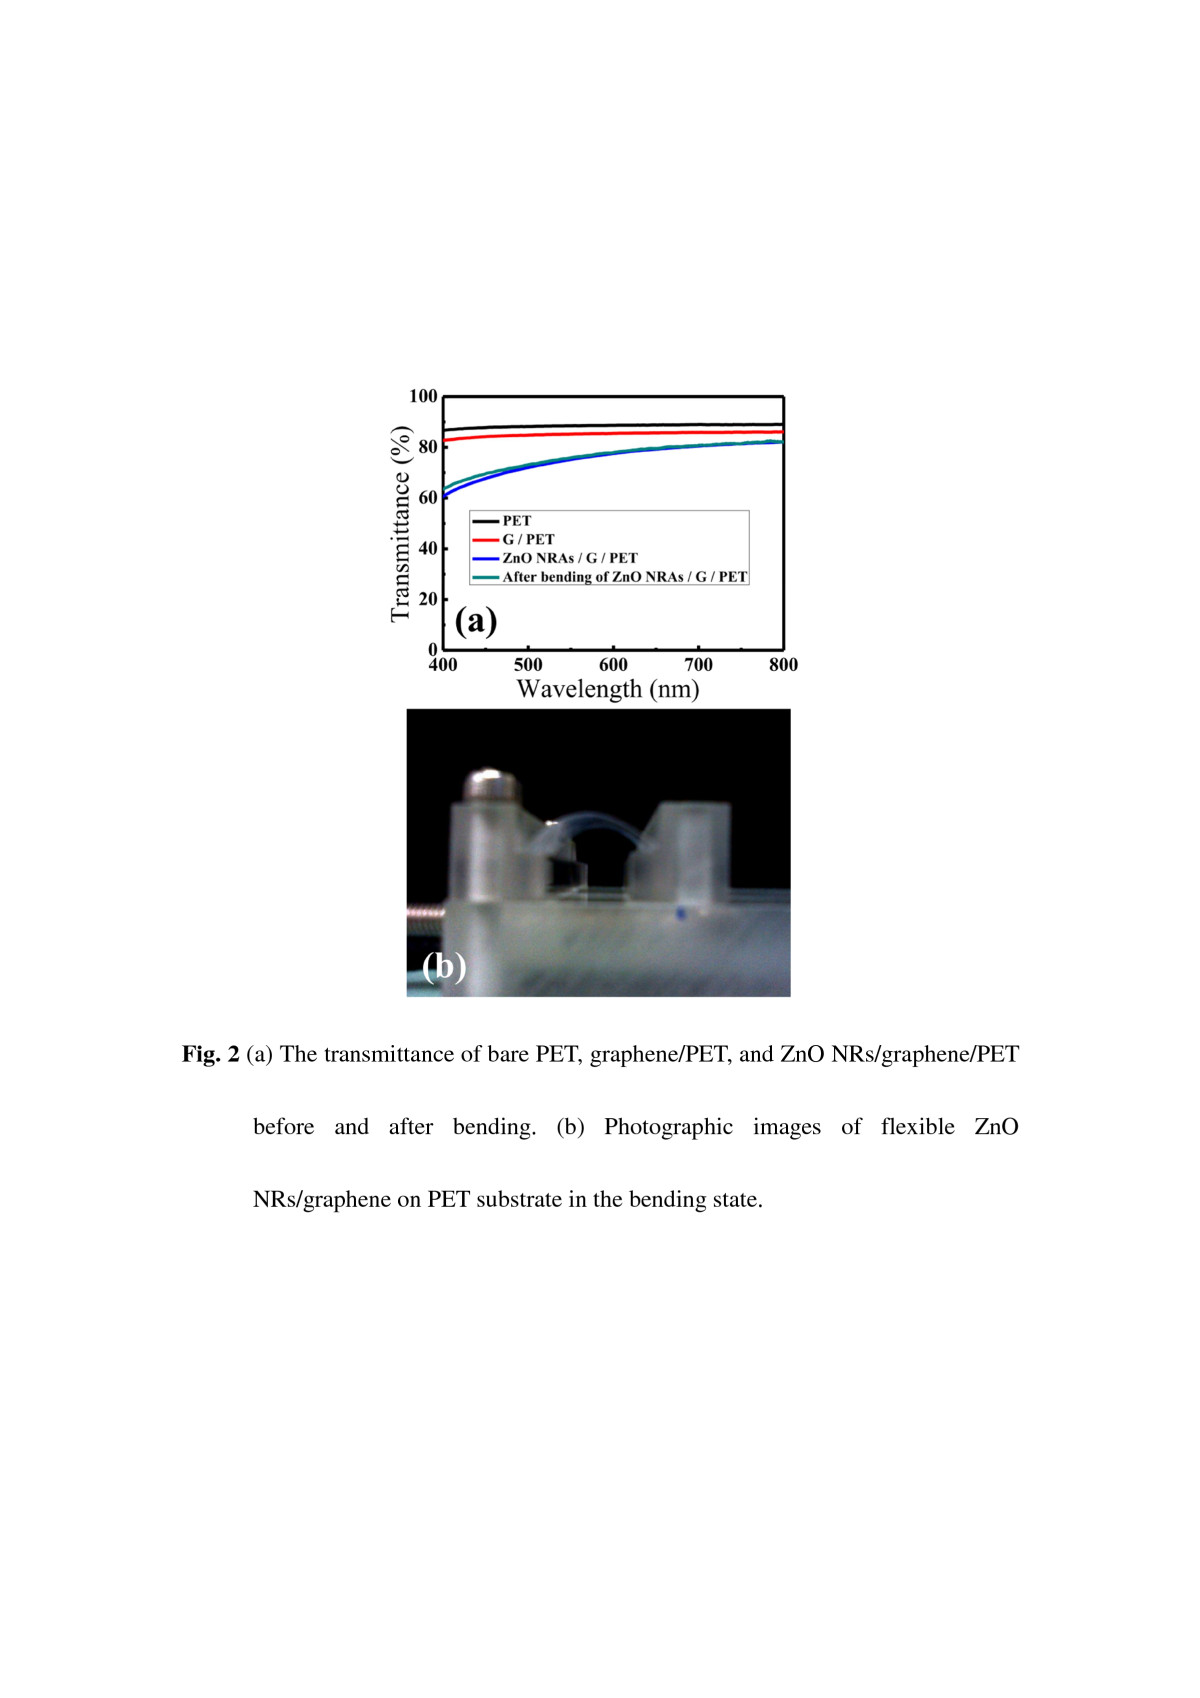 http://static-content.springer.com/image/art%3A10.1186%2F1556-276X-8-350/MediaObjects/11671_2013_Article_1598_Fig2_HTML.jpg